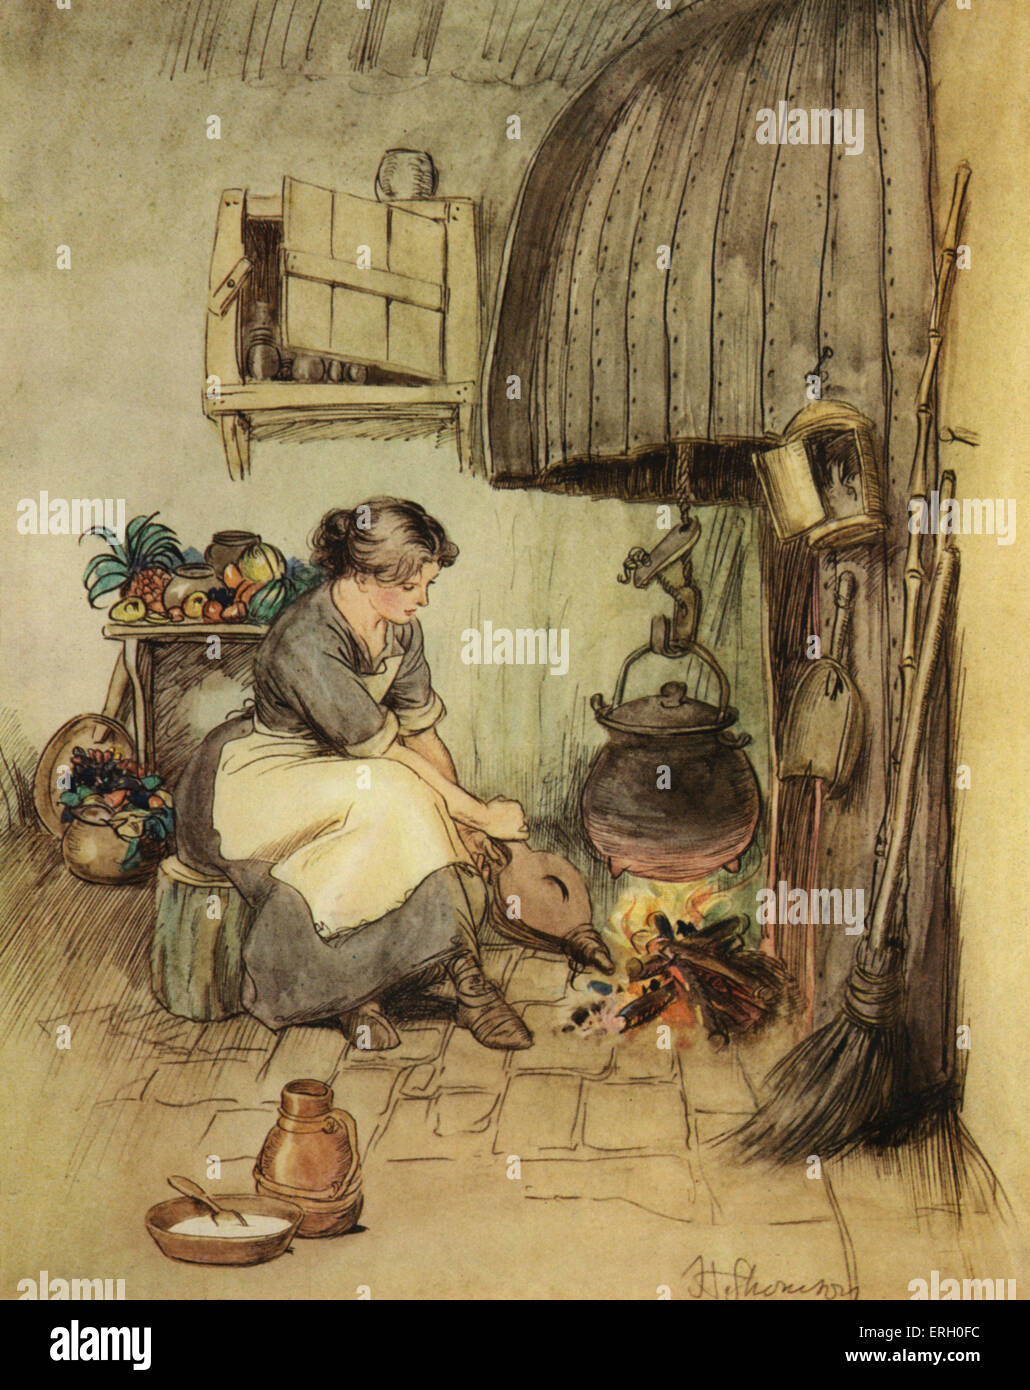 J M Barrie 'The Admirable Crichton' comedy written in 1902. Act III (The Happy Home): Tweeny, alone among the women, Stock Photo